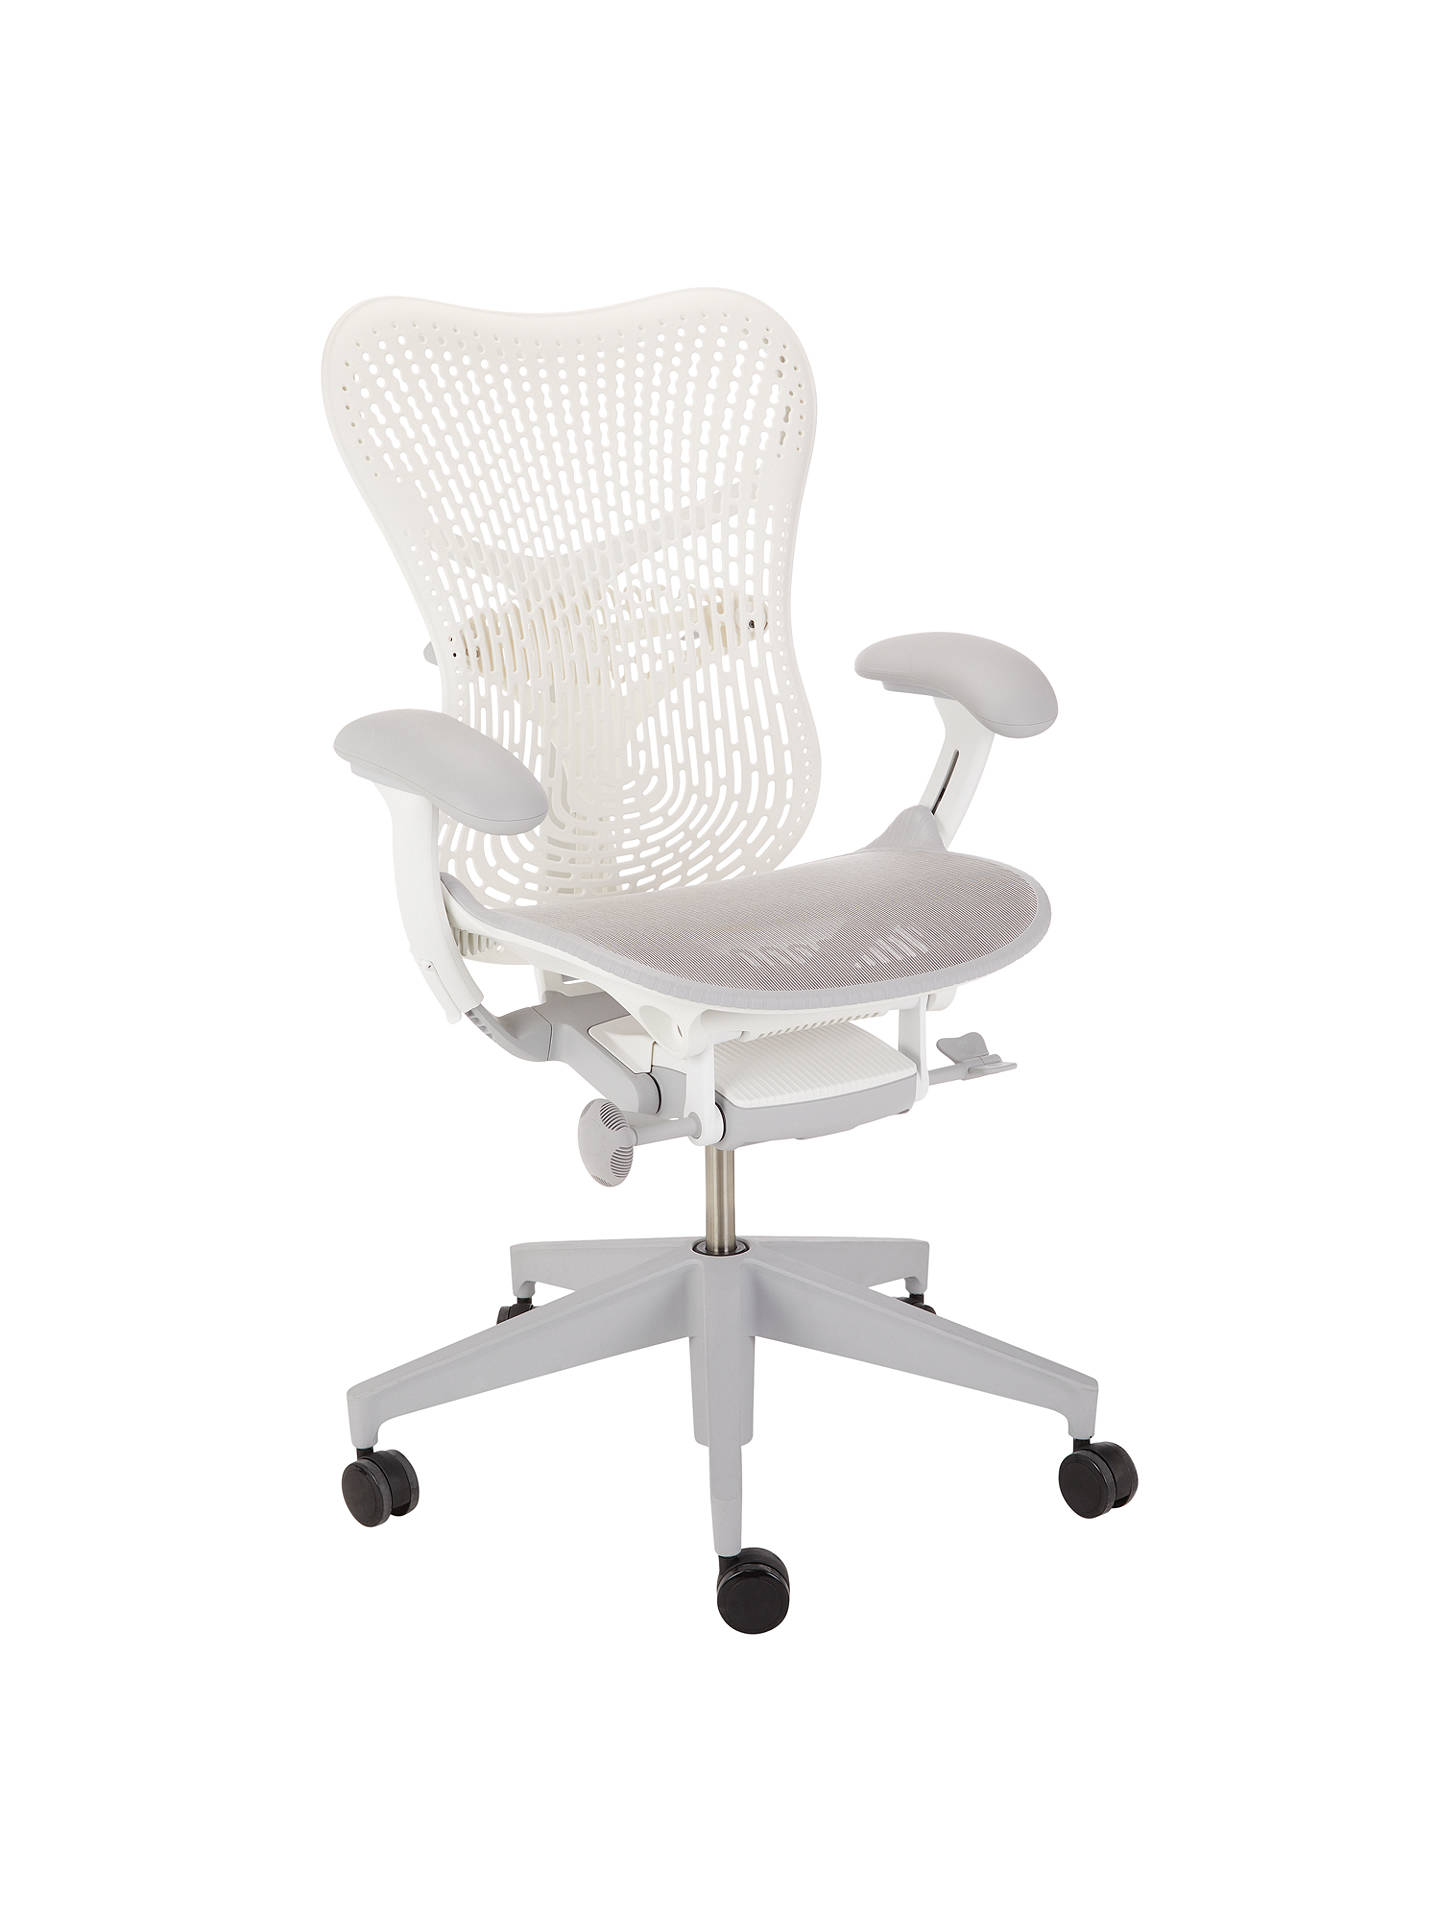 BuyHerman Miller Mirra 2 Triflex Office Chair, White Online at johnlewis.com